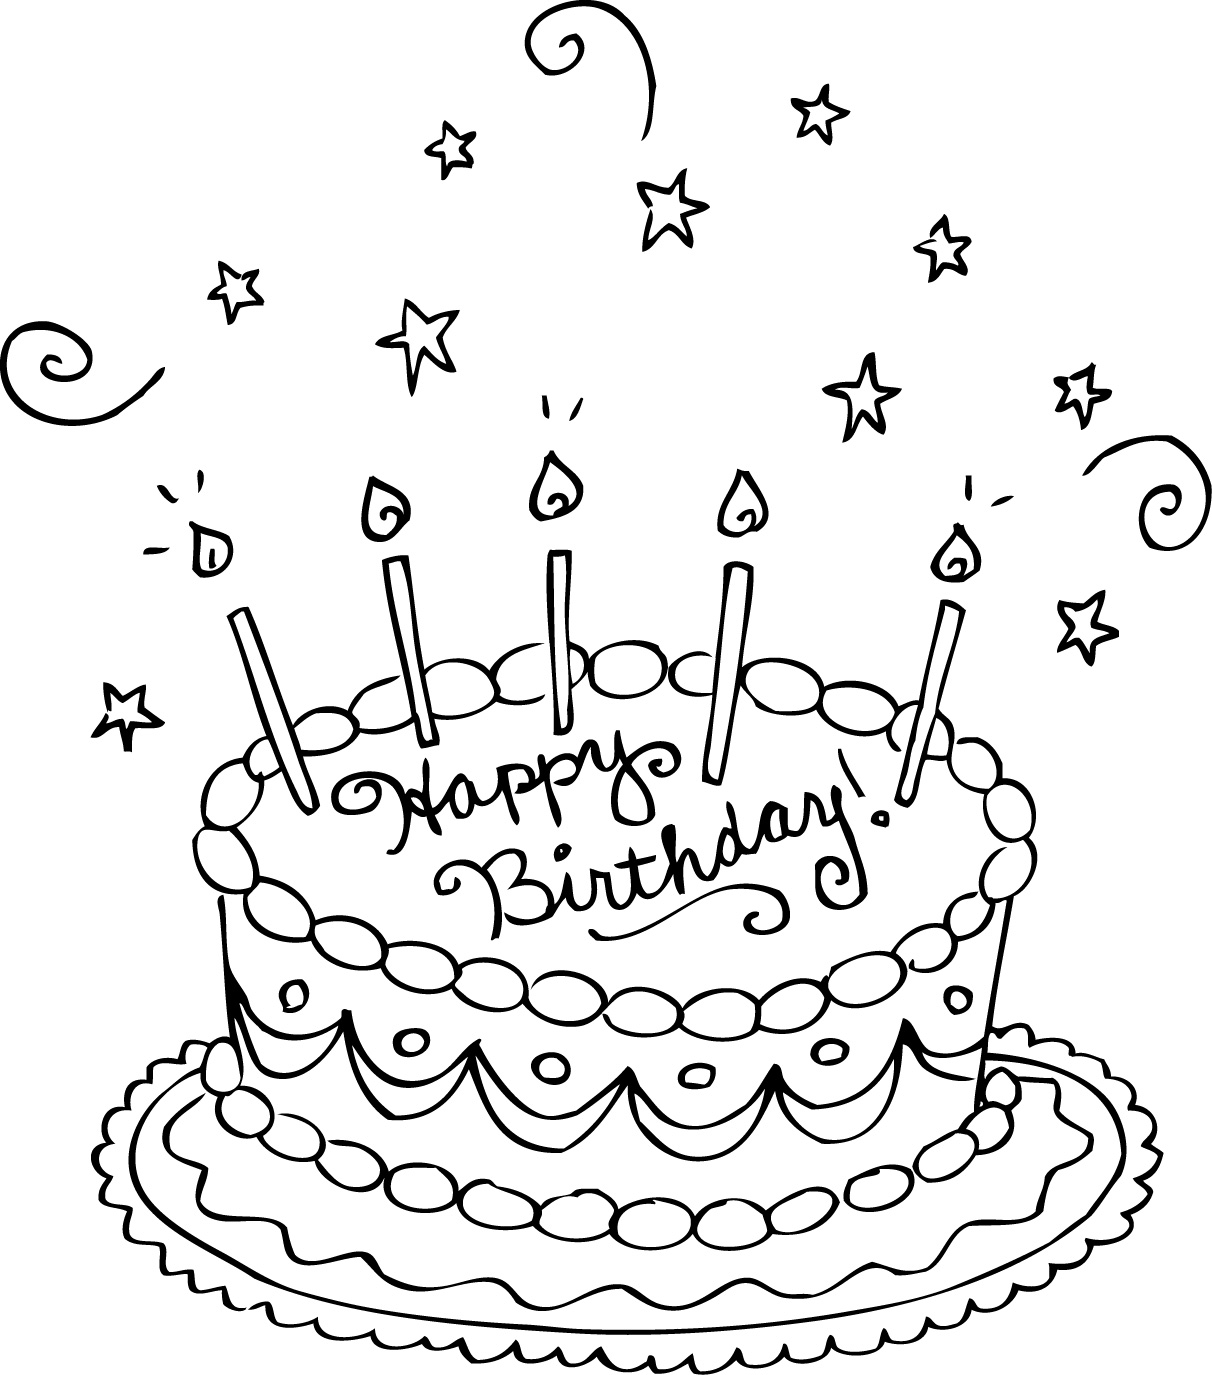 free printable coloring birthday cards cute birthday card with big cake coloring page for kids free coloring birthday printable cards